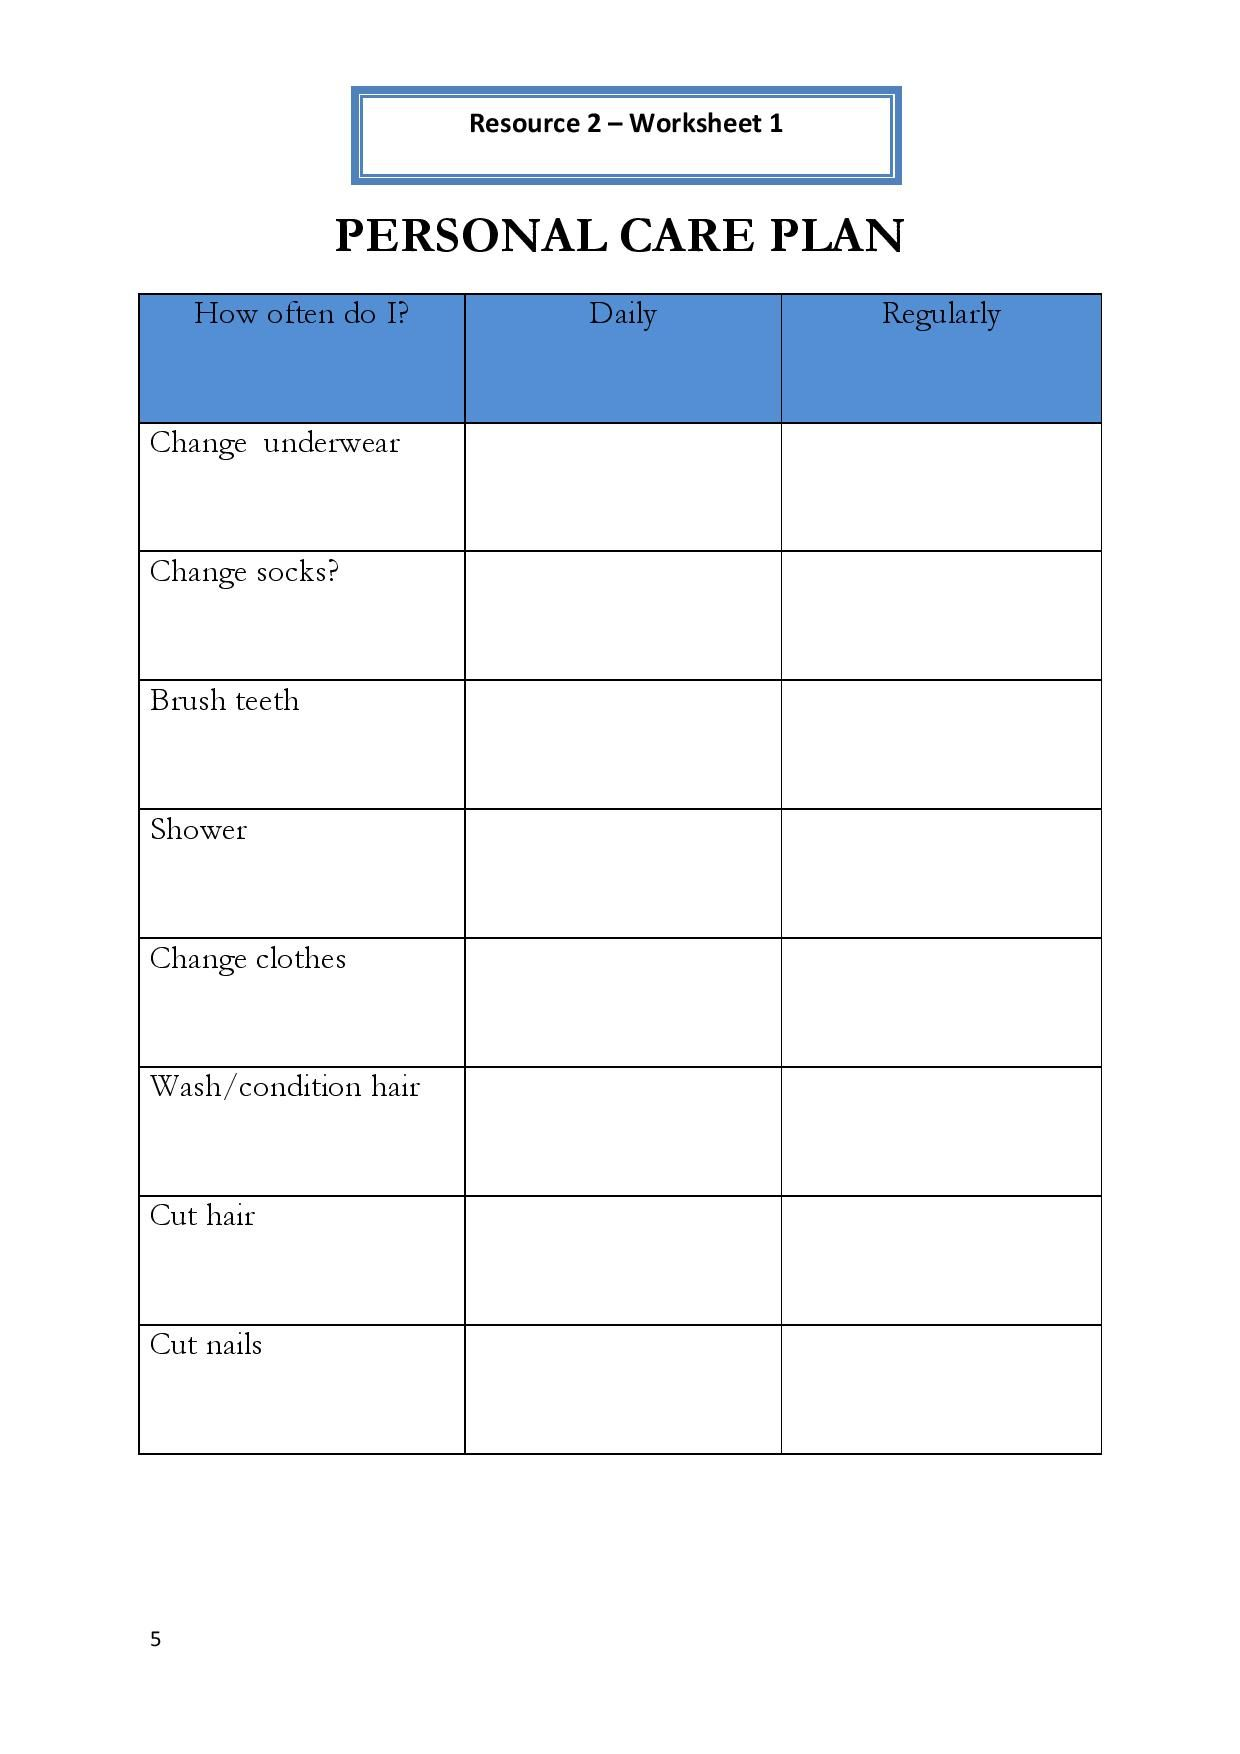 Printables Hygiene Worksheets For Elementary Students